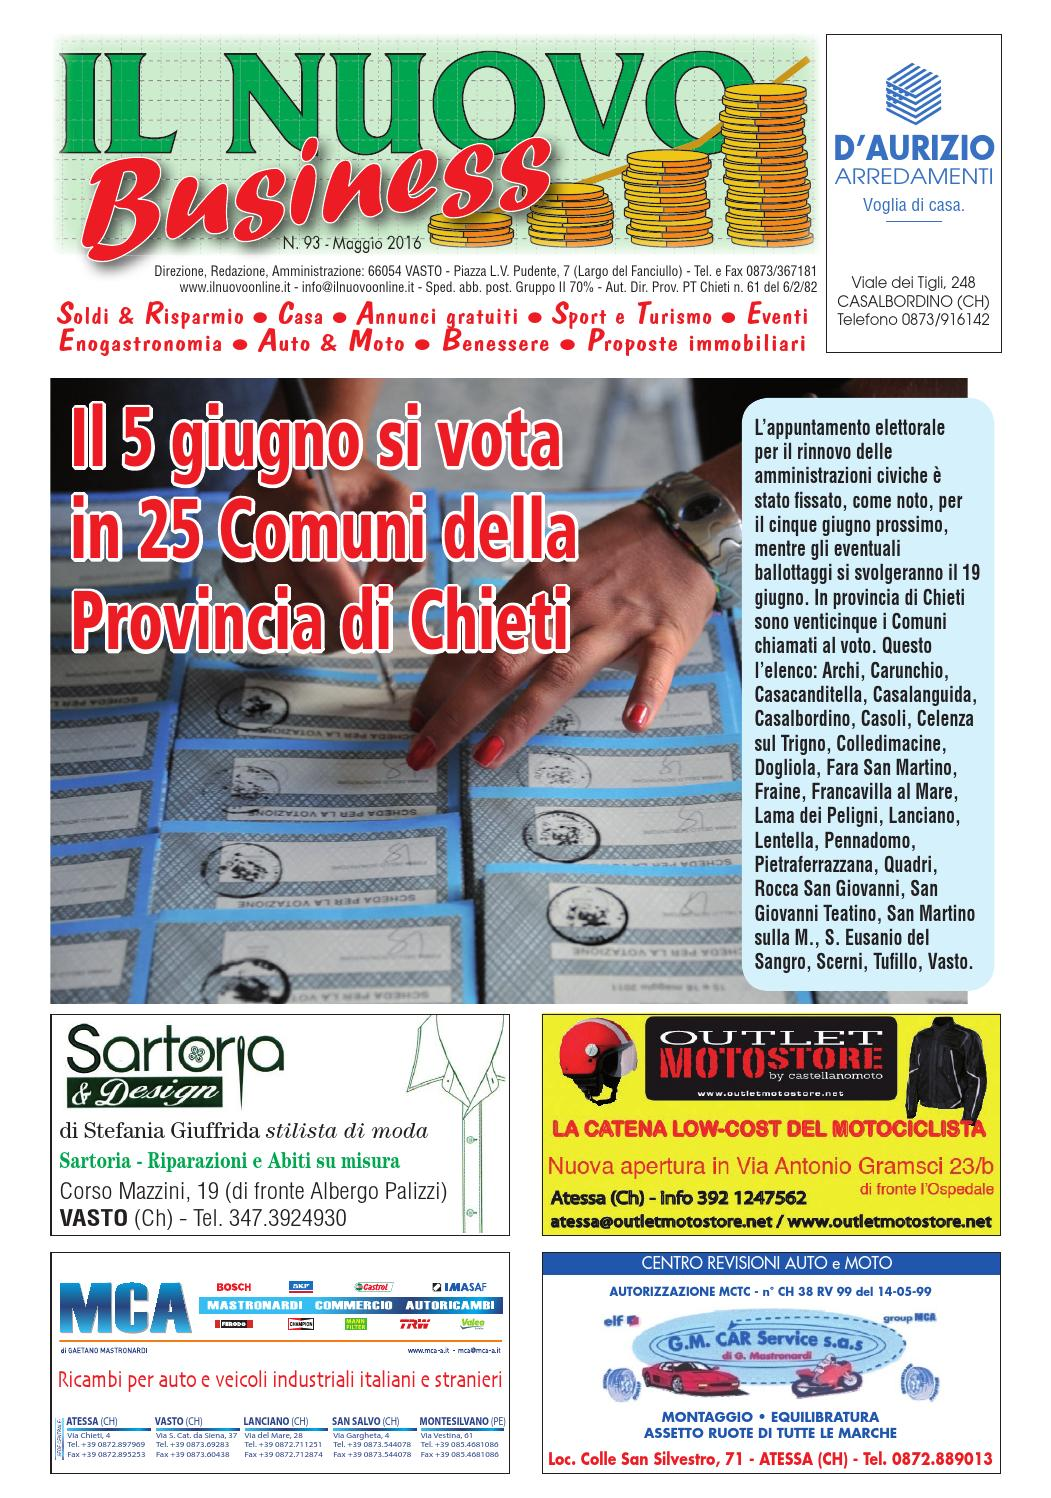 Business maggio 2016 by nicolangelo gualtieri issuu for Gualtieri arredamenti